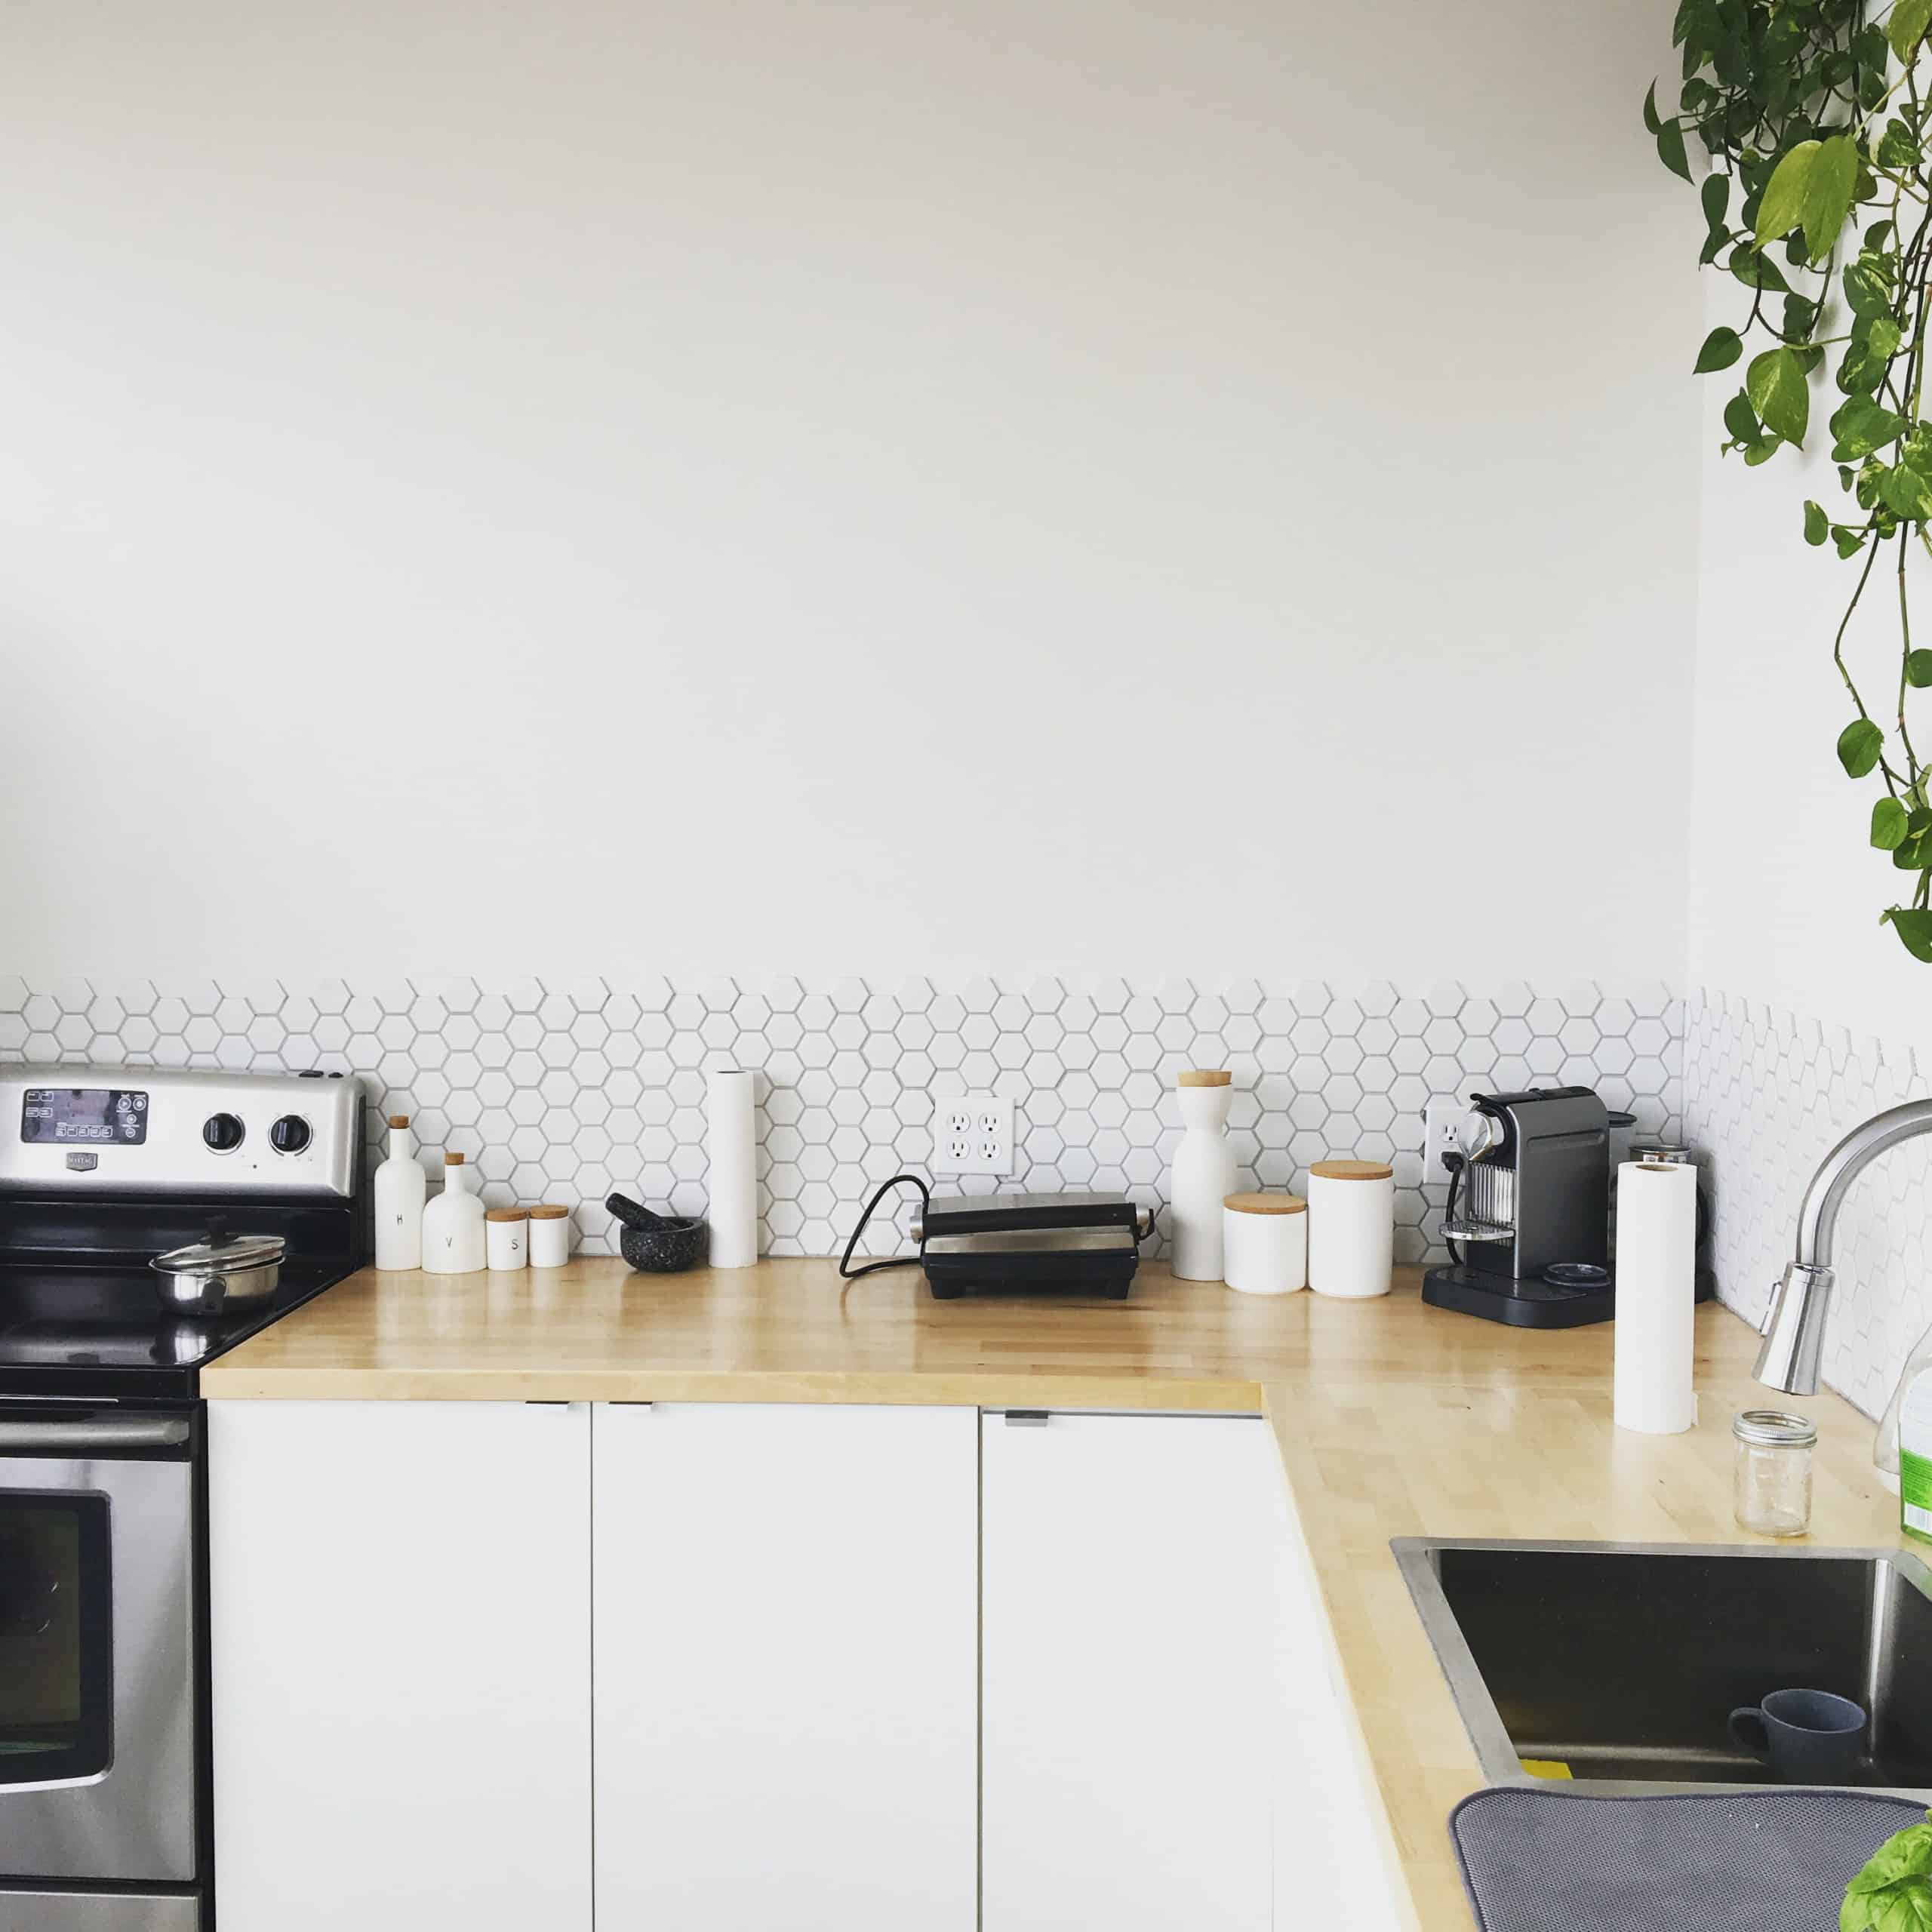 7 Things You Can Do Every Morning to Keep Your House Spotless